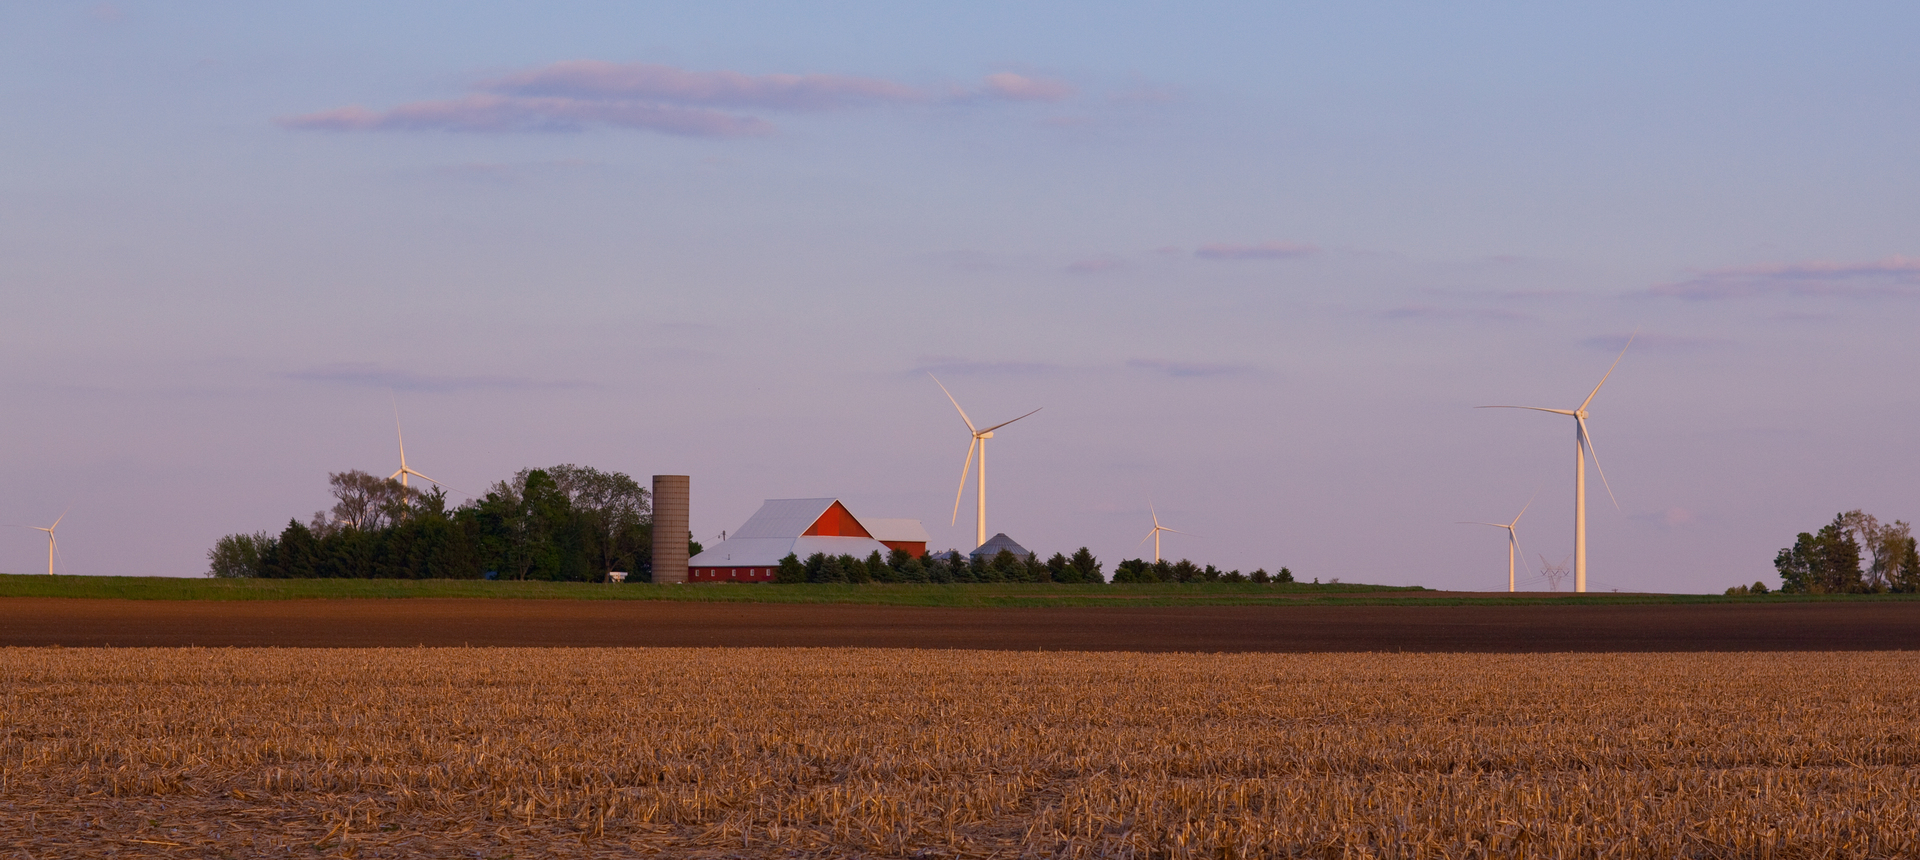 illinois farm neighbors with an illinois wind farm